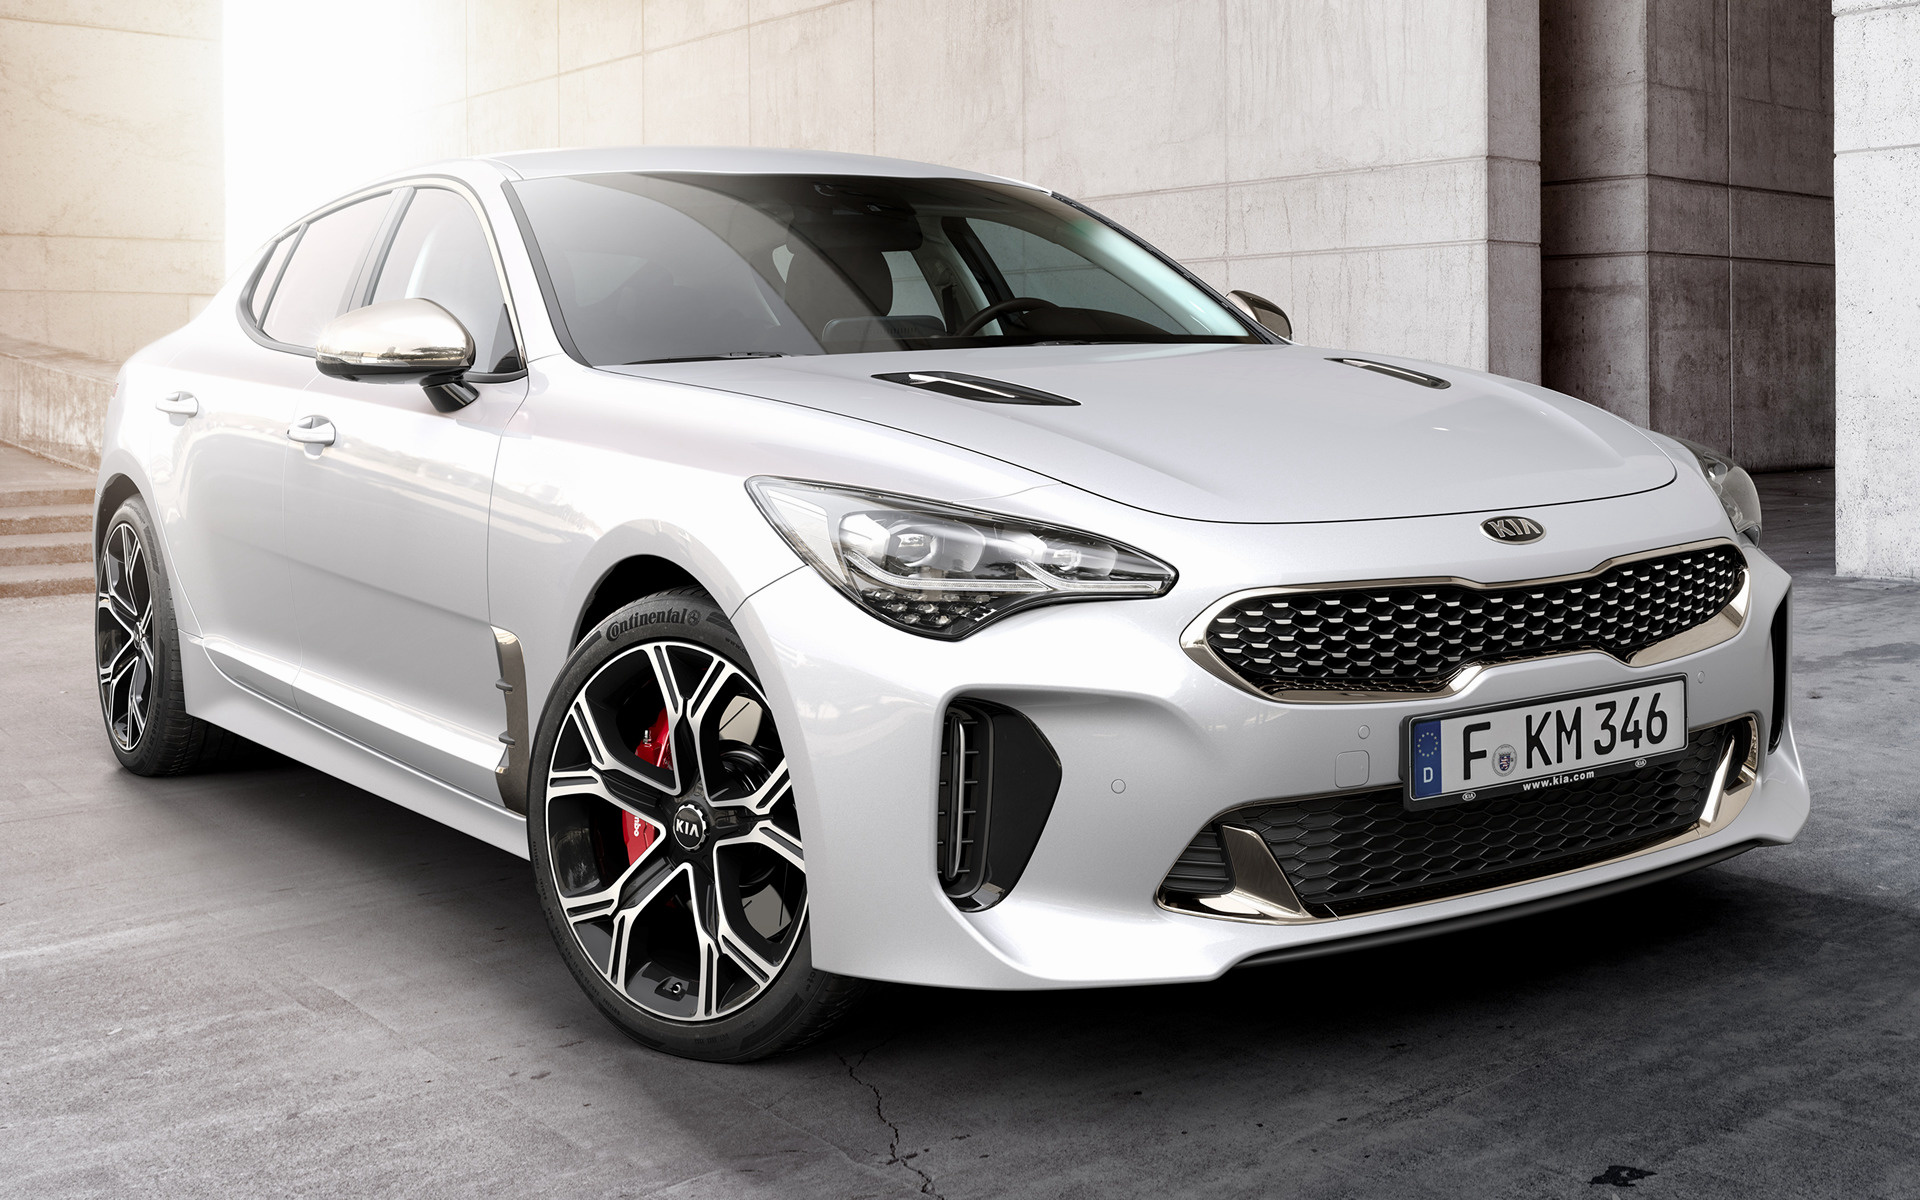 Kia Stinger GT (2017) Wallpapers and HD Images - Car Pixel